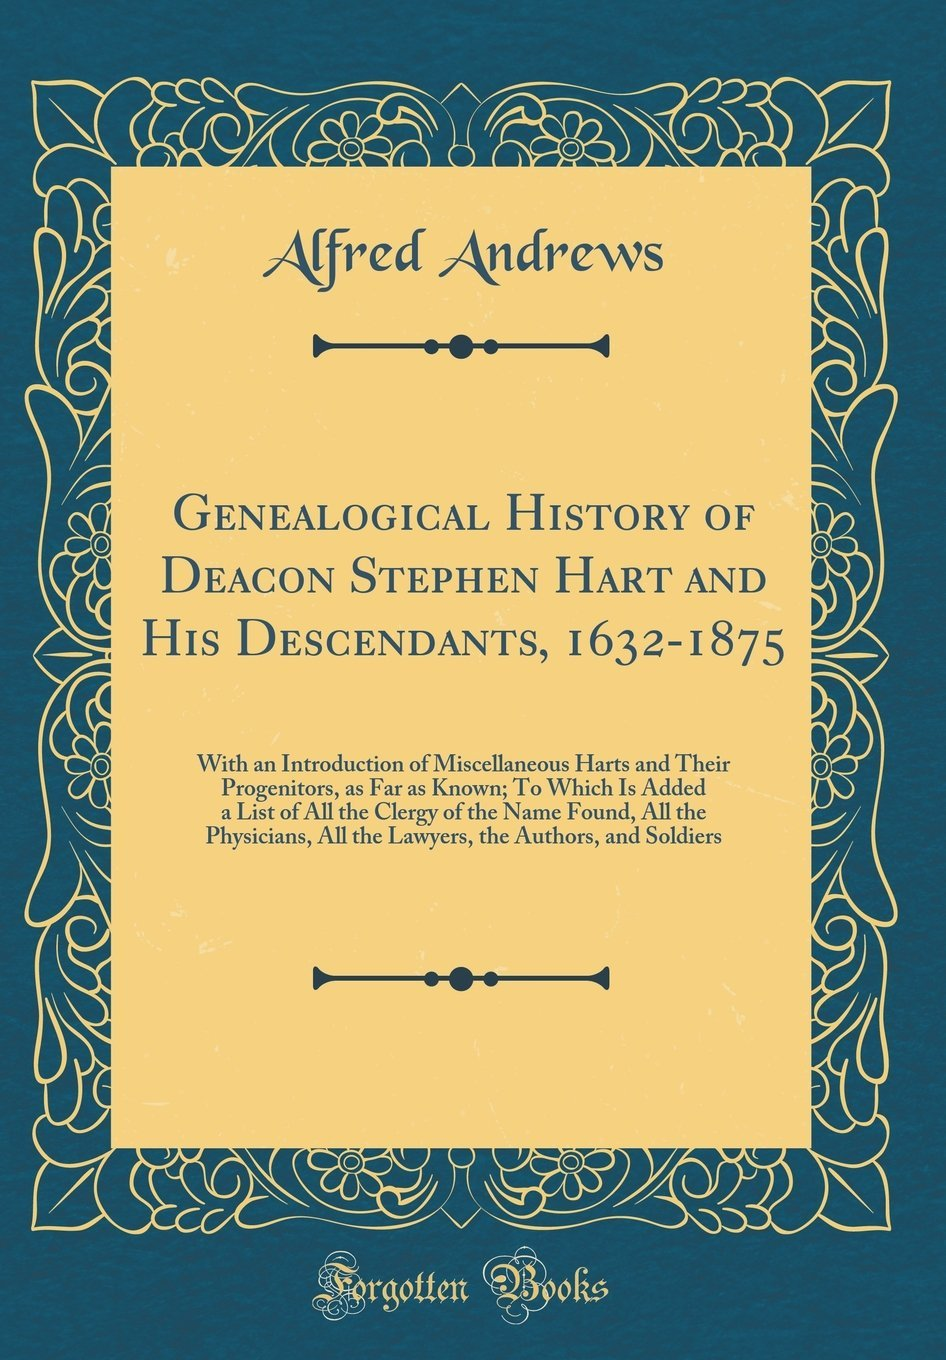 Download Genealogical History of Deacon Stephen Hart and His Descendants, 1632-1875: With an Introduction of Miscellaneous Harts and Their Progenitors, as Far ... Name Found, All the Physicians, All the Lawye pdf